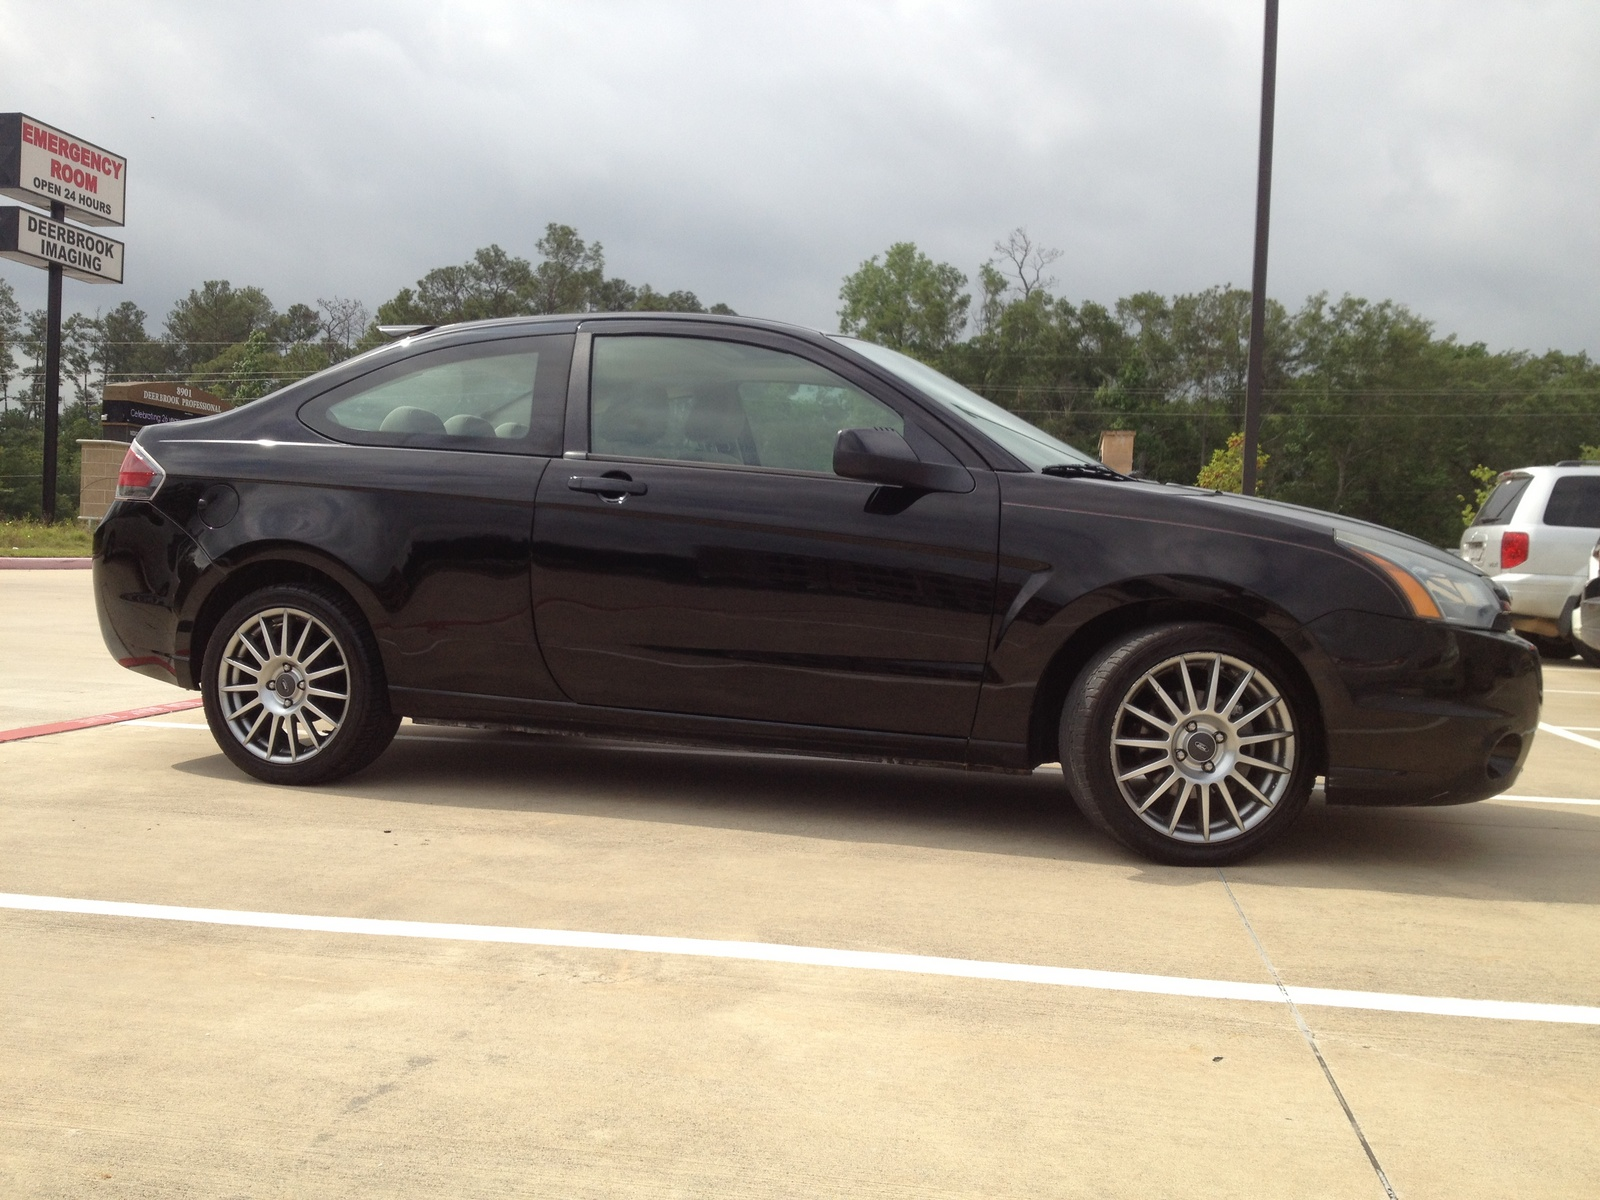 Picture of 2009 ...2009 Ford Focus Sel Specs